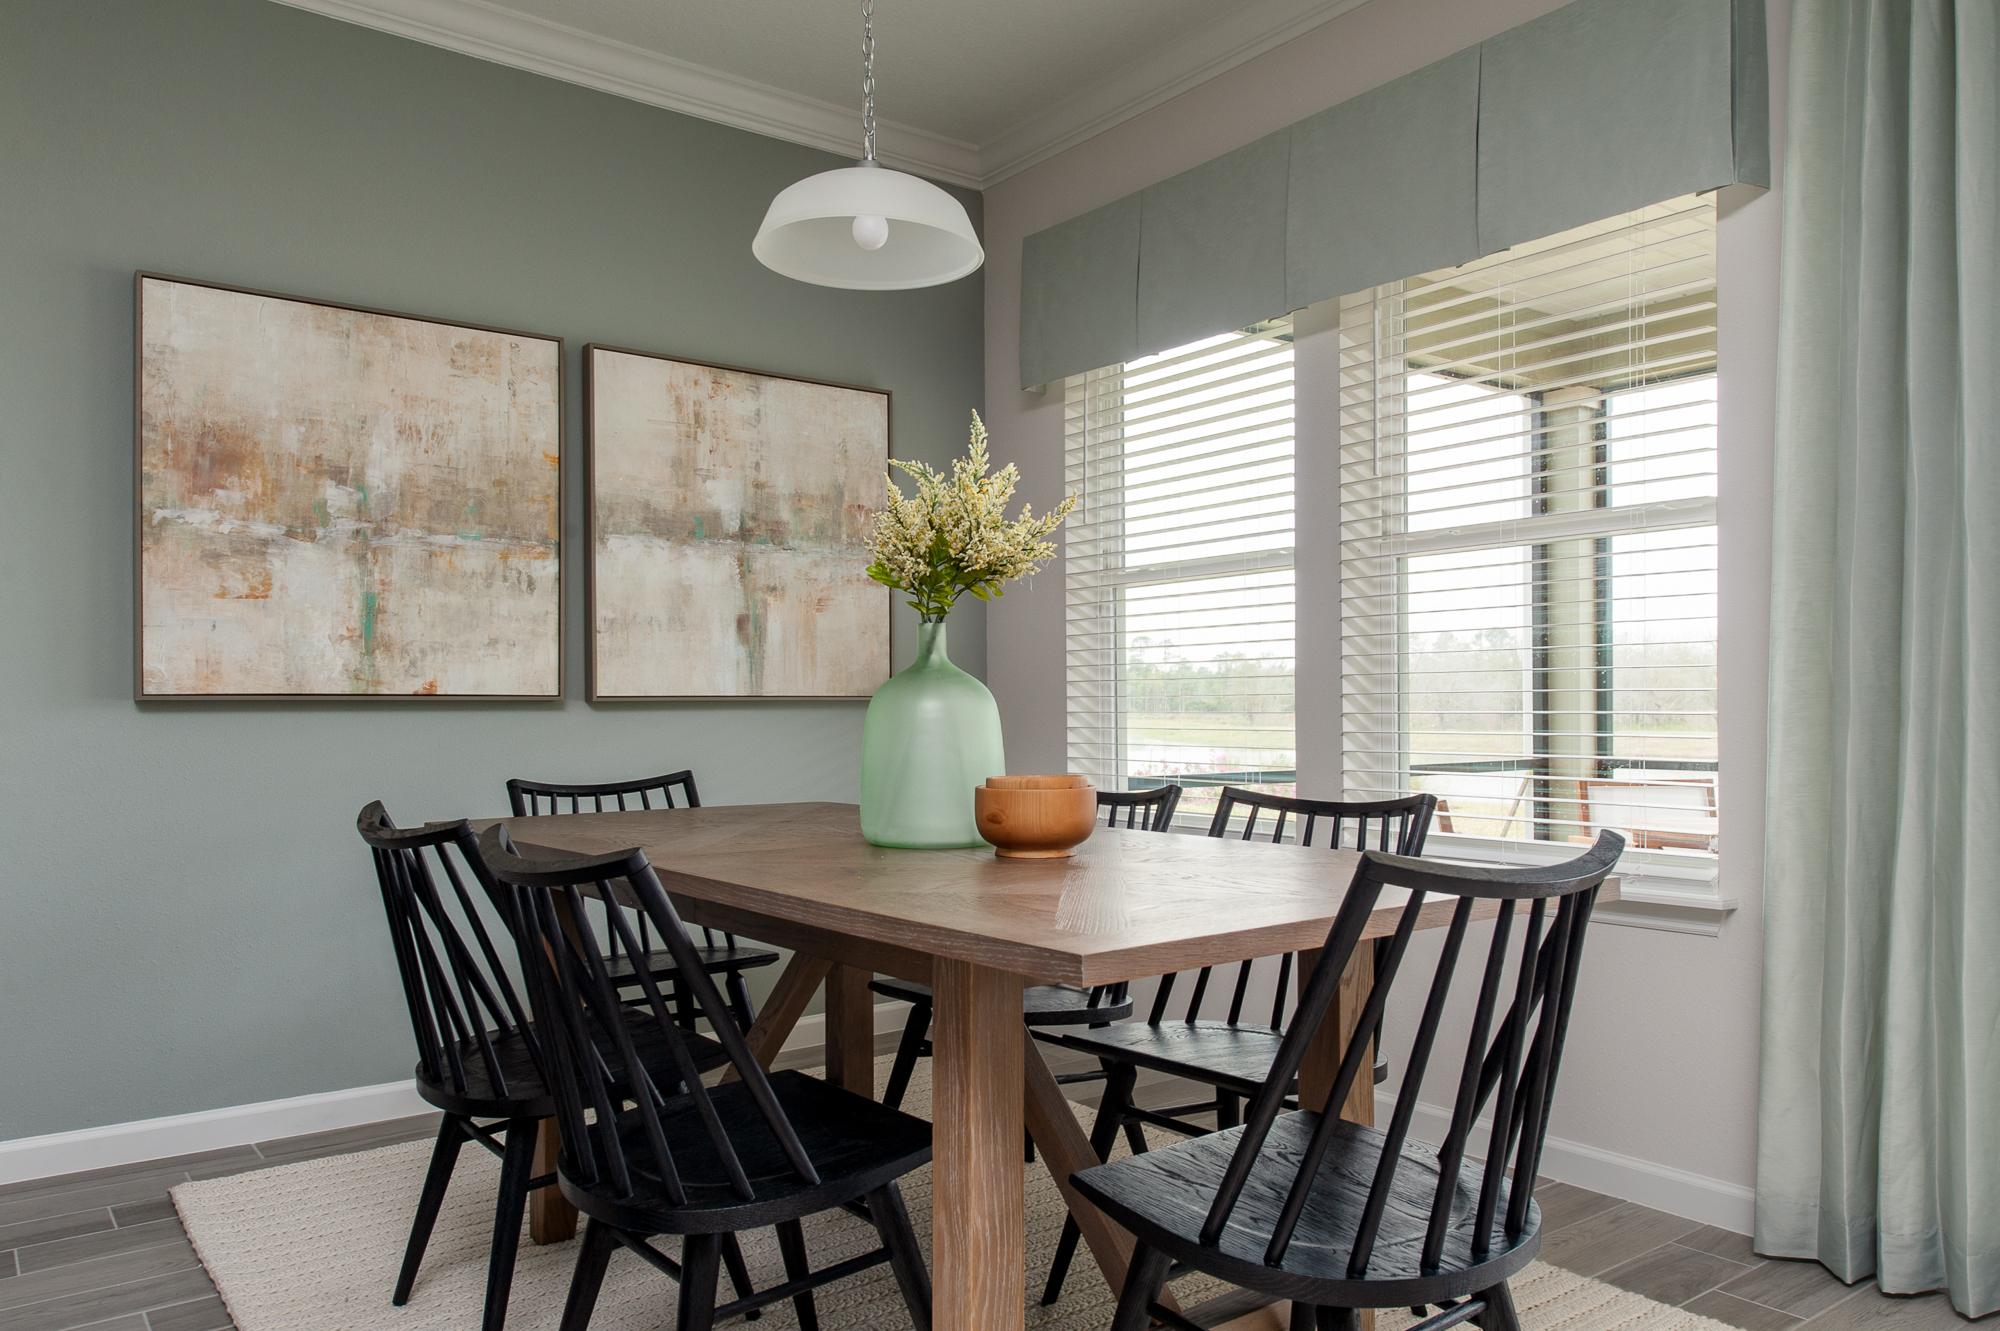 MIcamy Design Studio_Model Home_Interior Design_Orchard Cove_Modern Coastal_Dining Room_McGee & Co_Four Hands_Universal_Safavieh.jpg